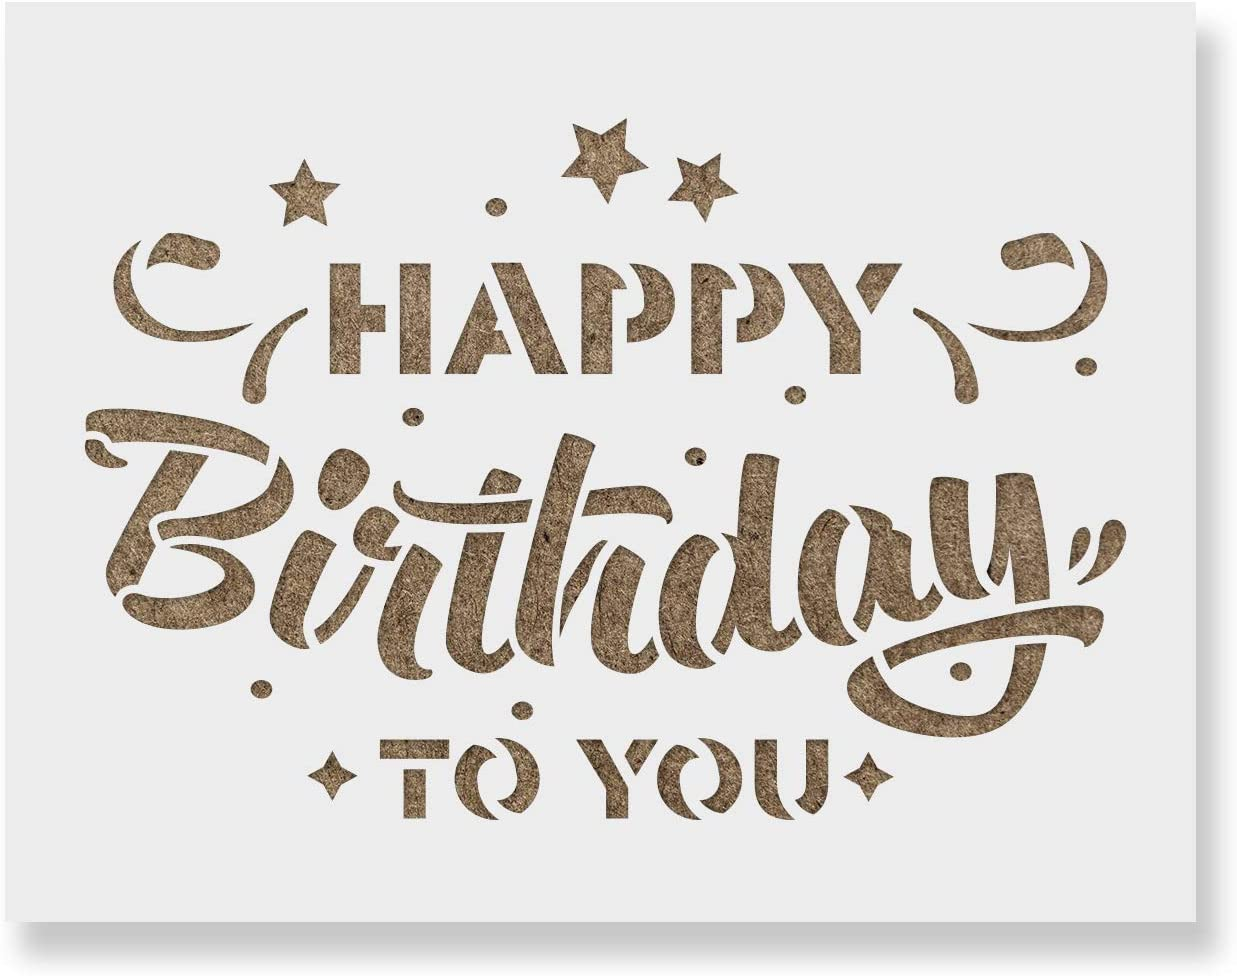 Happy Birthday Letter Template from images-na.ssl-images-amazon.com